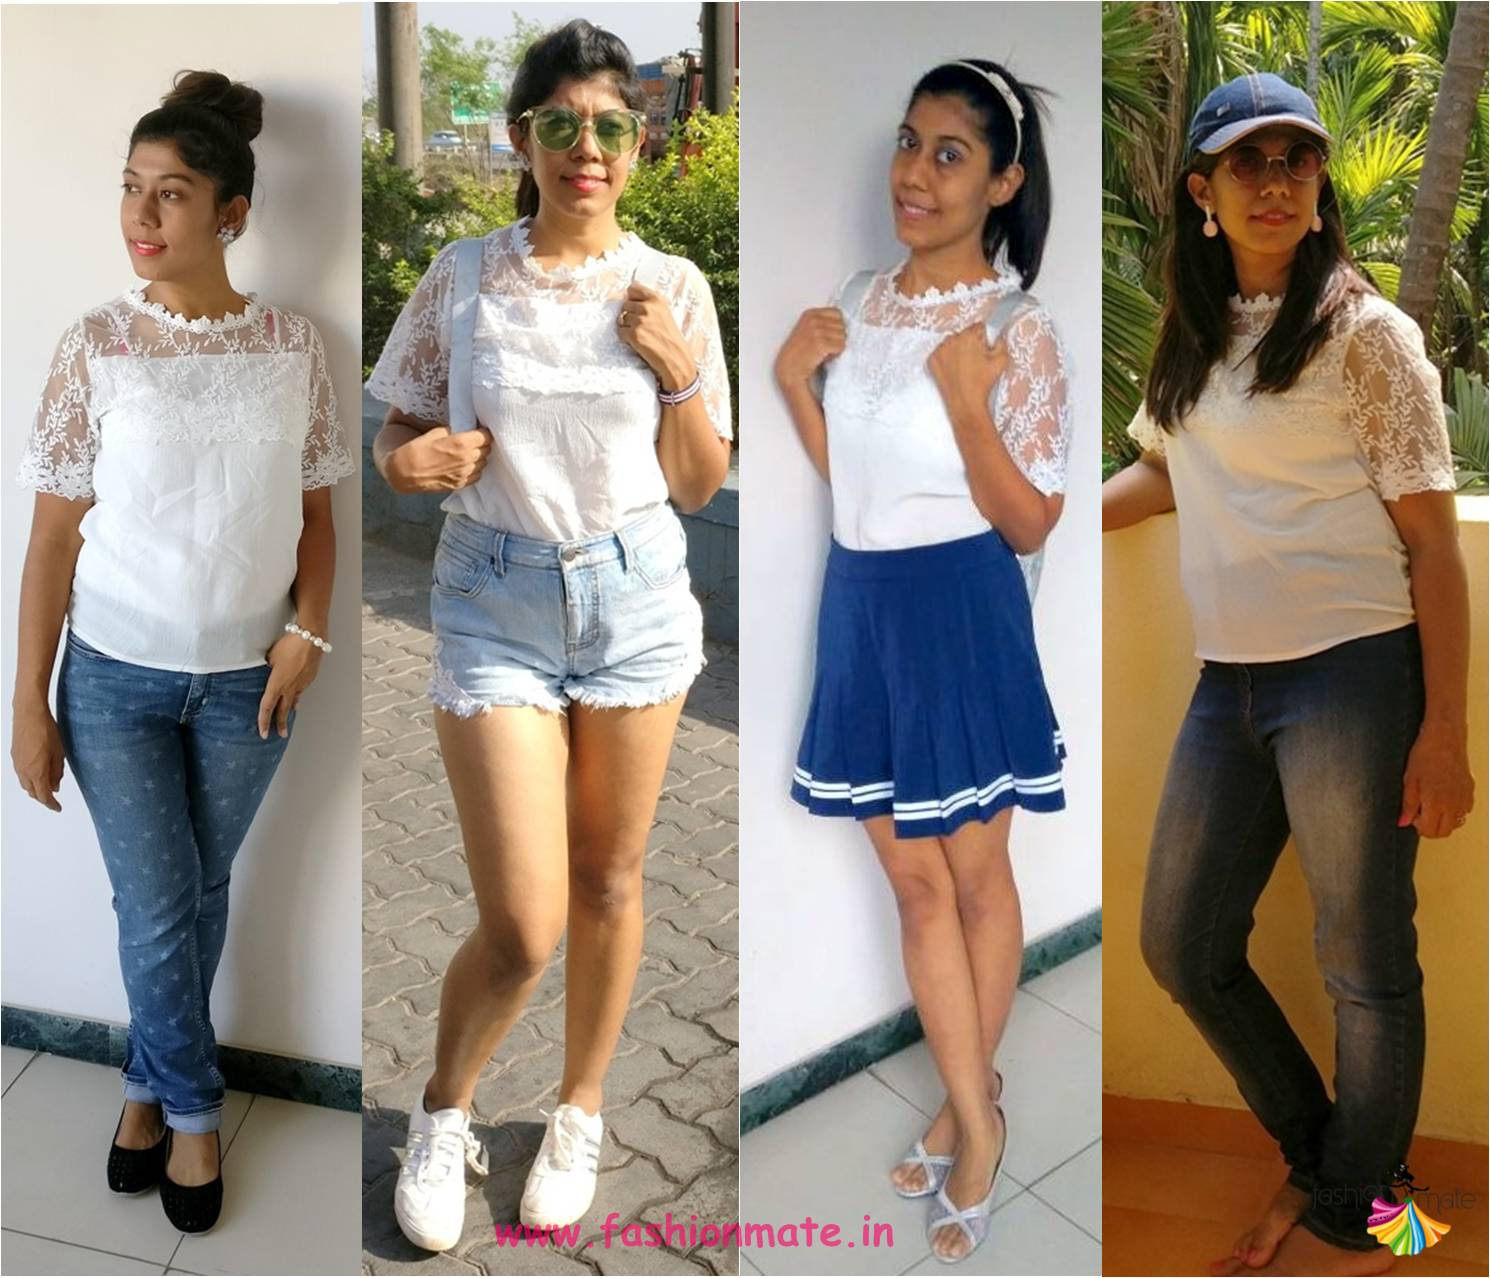 Monsoon Capsule collection – Four different ways to style a lace top!